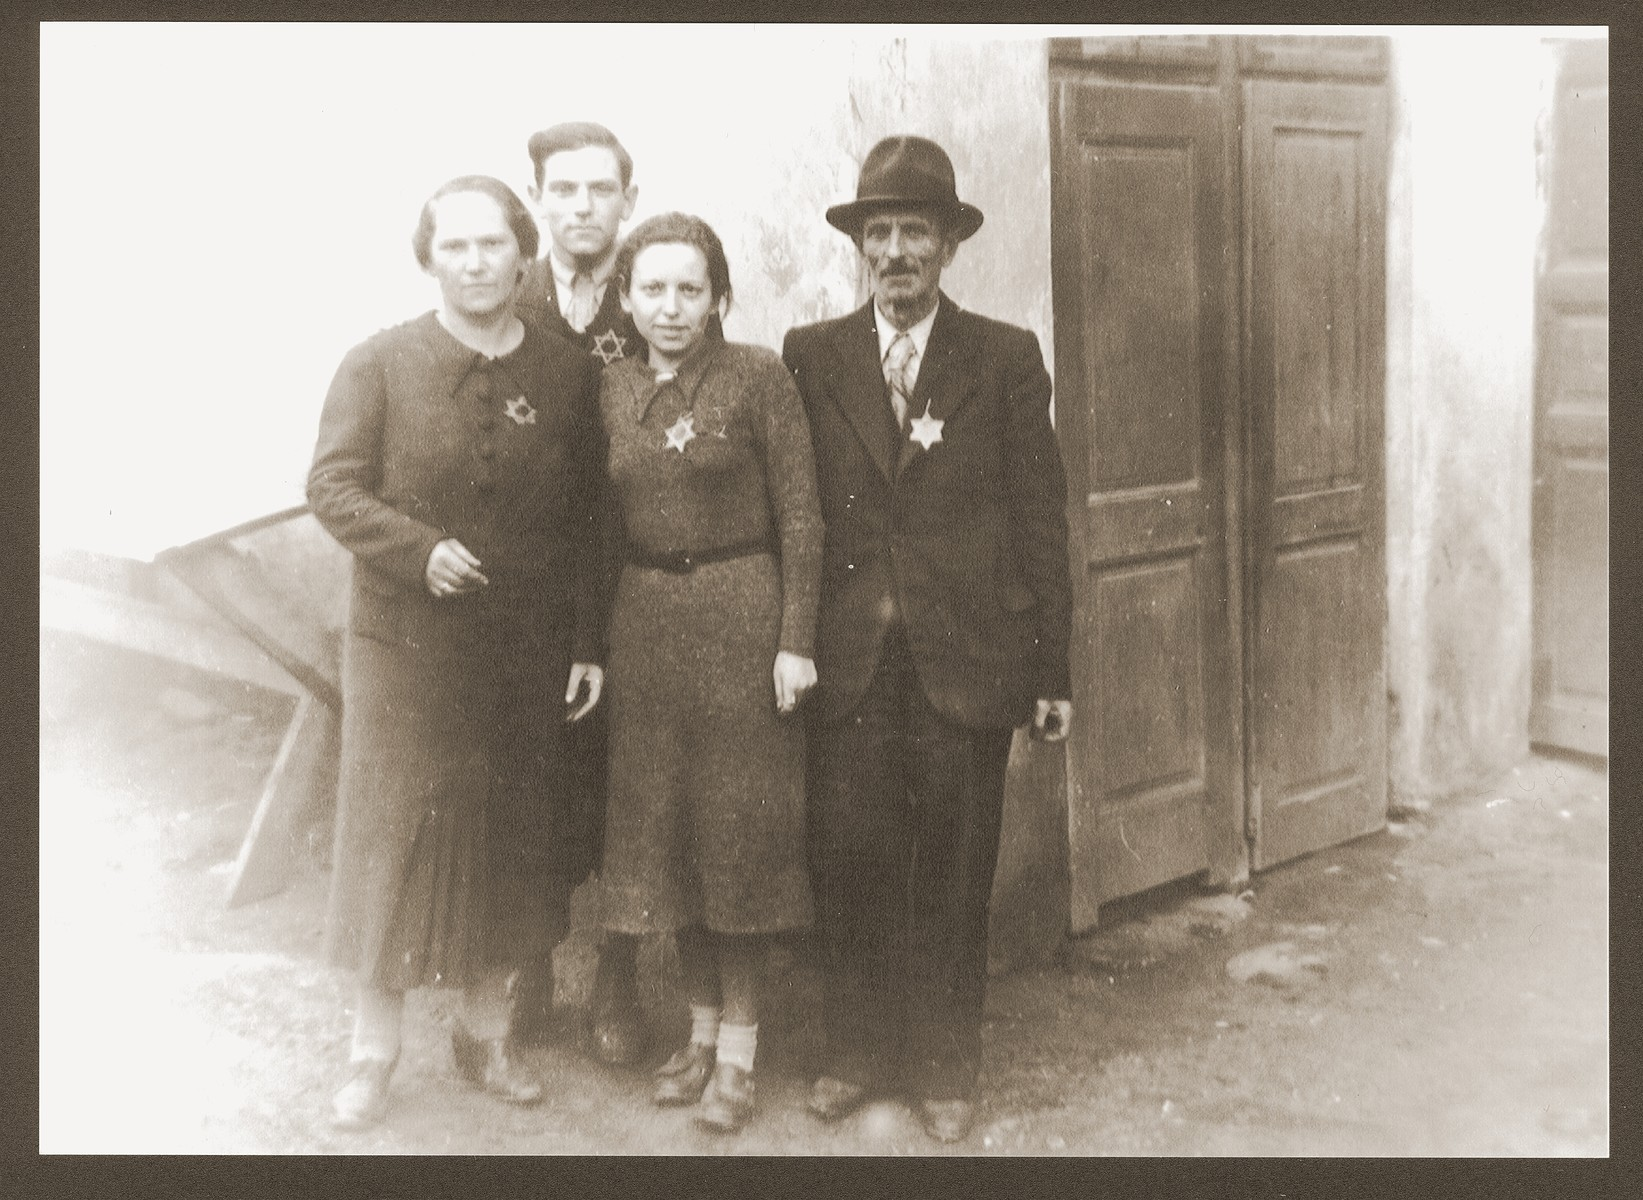 Portrait of the Weidenfeld family wearing Jewish badges in the Czernowitz (Cernauti) ghetto shortly before their deportation to Transnistria.  Pictured from left to right are Yetty, Meshulem-Ber, Sallie and Simche Weidenfeld.